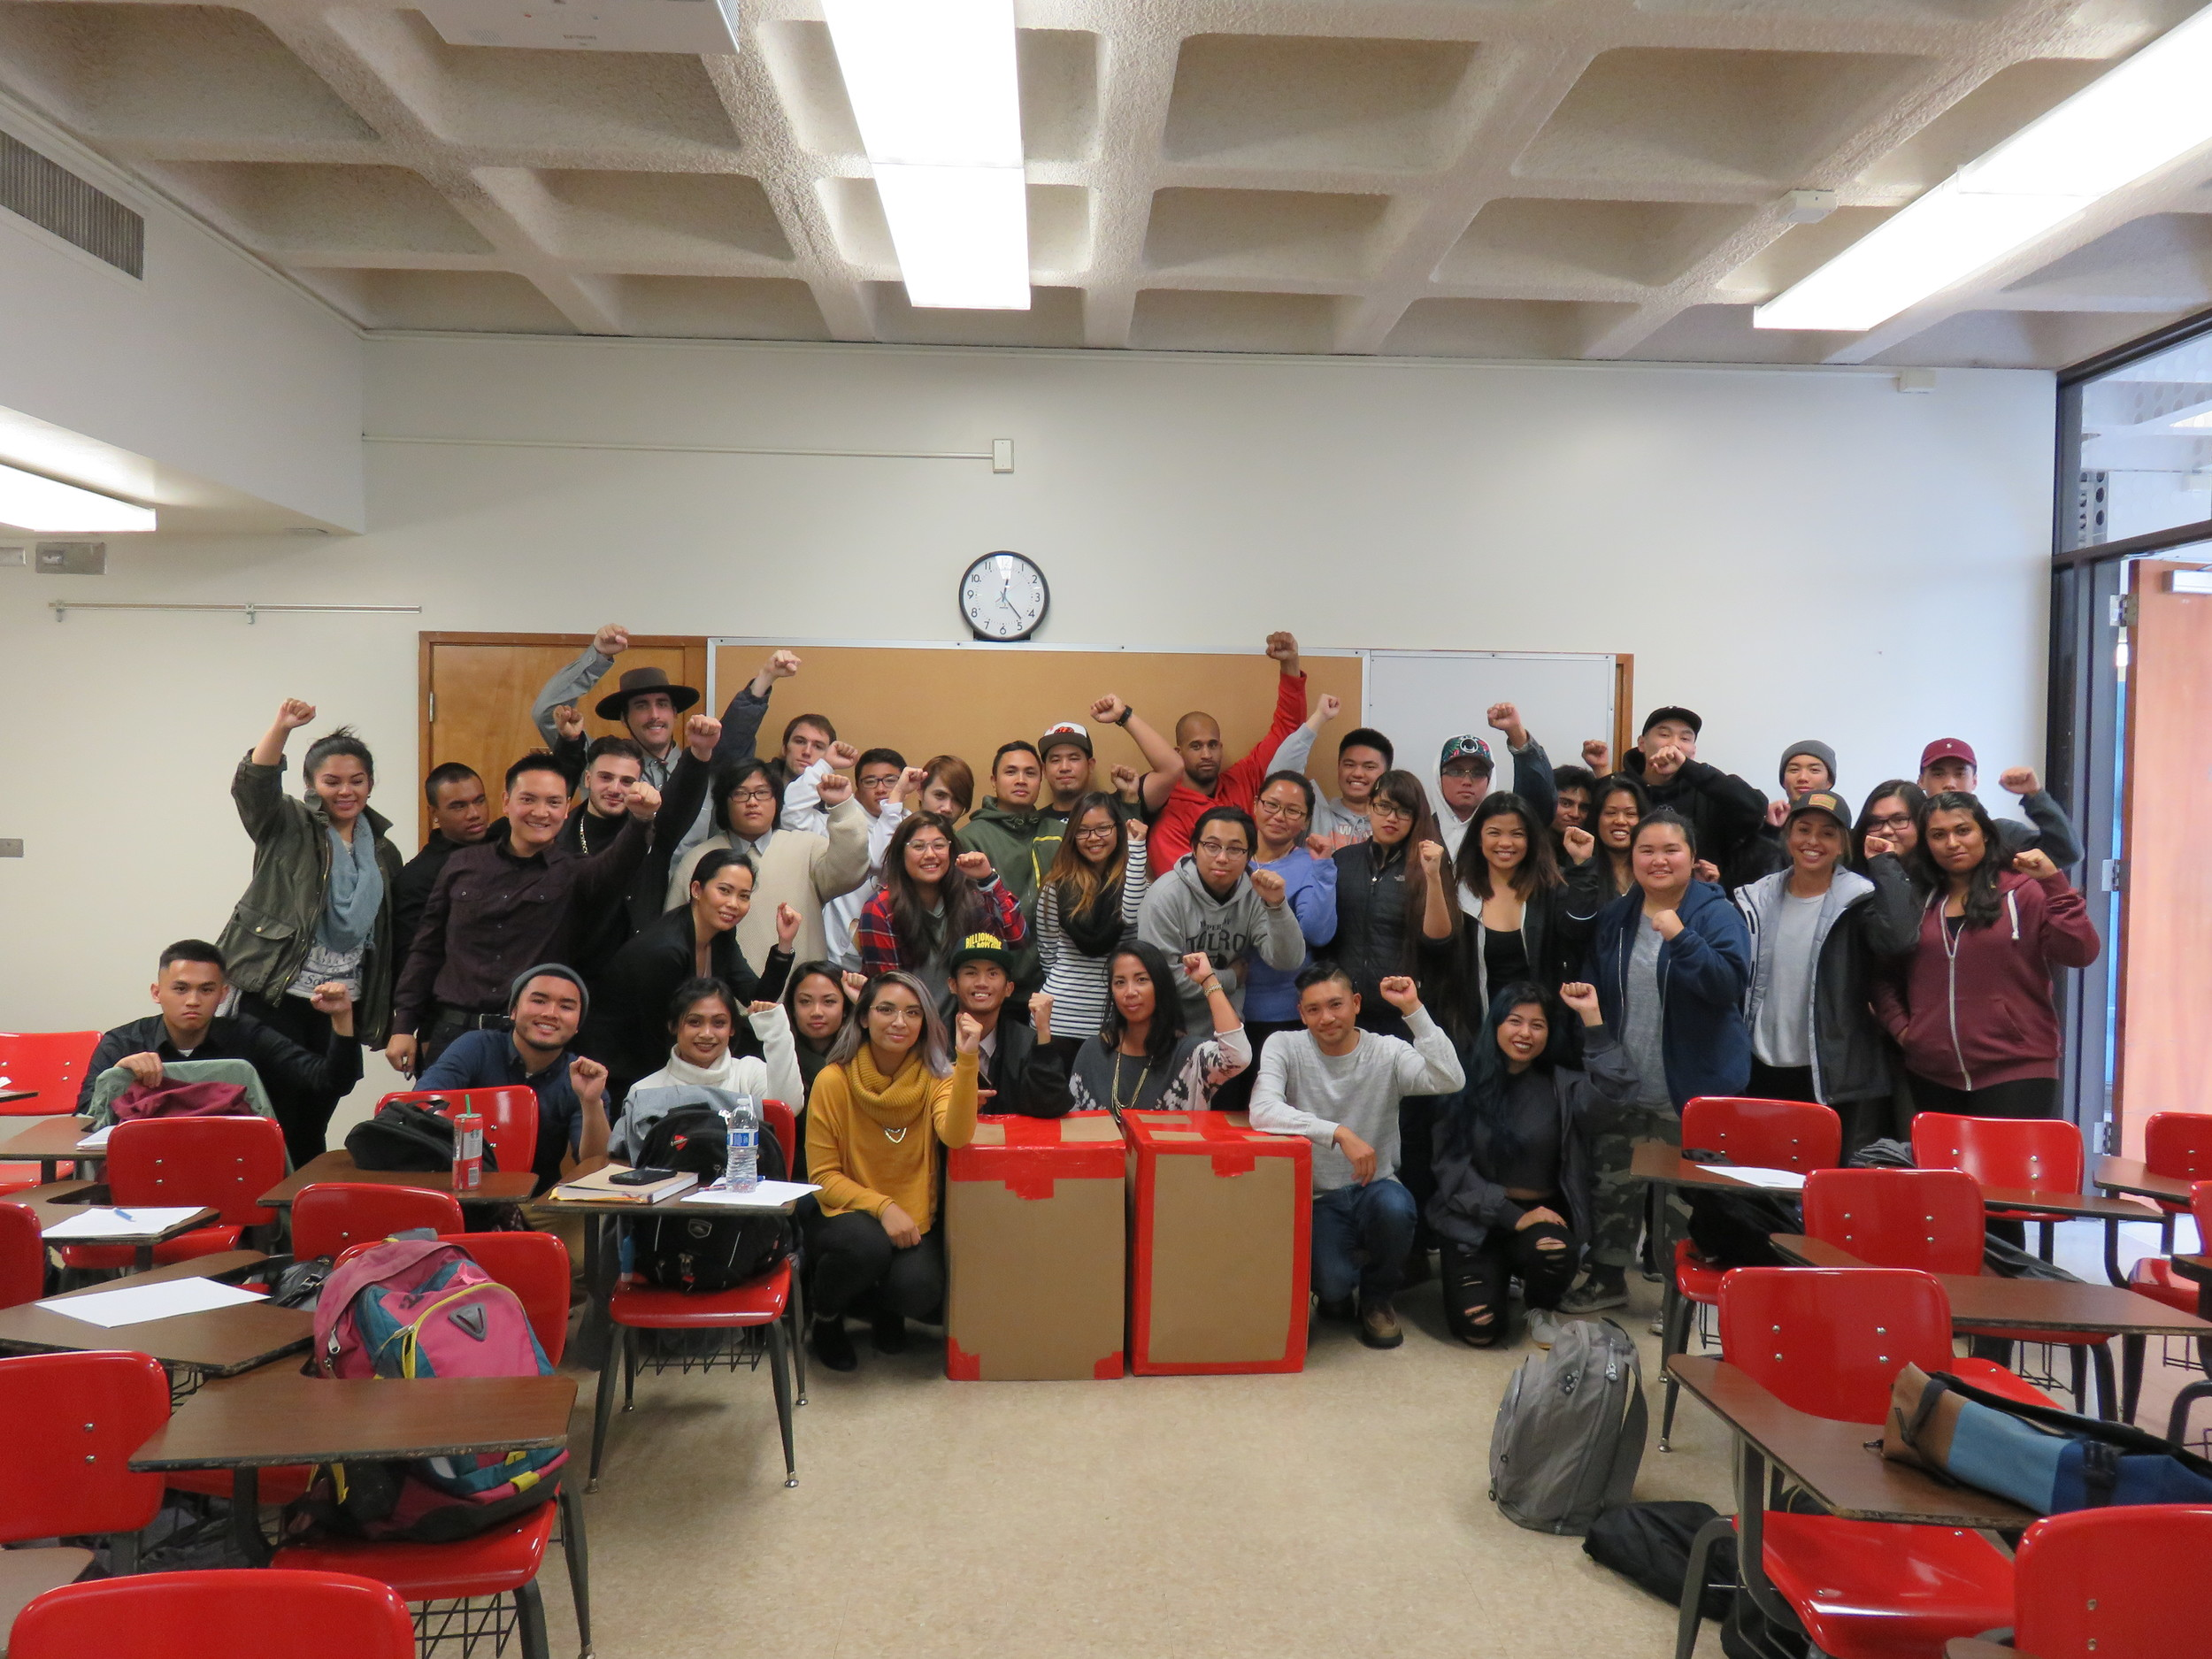 Skyline College - San Bruno, CA students collected 3 boxes of supplies for Salugpongan kids.